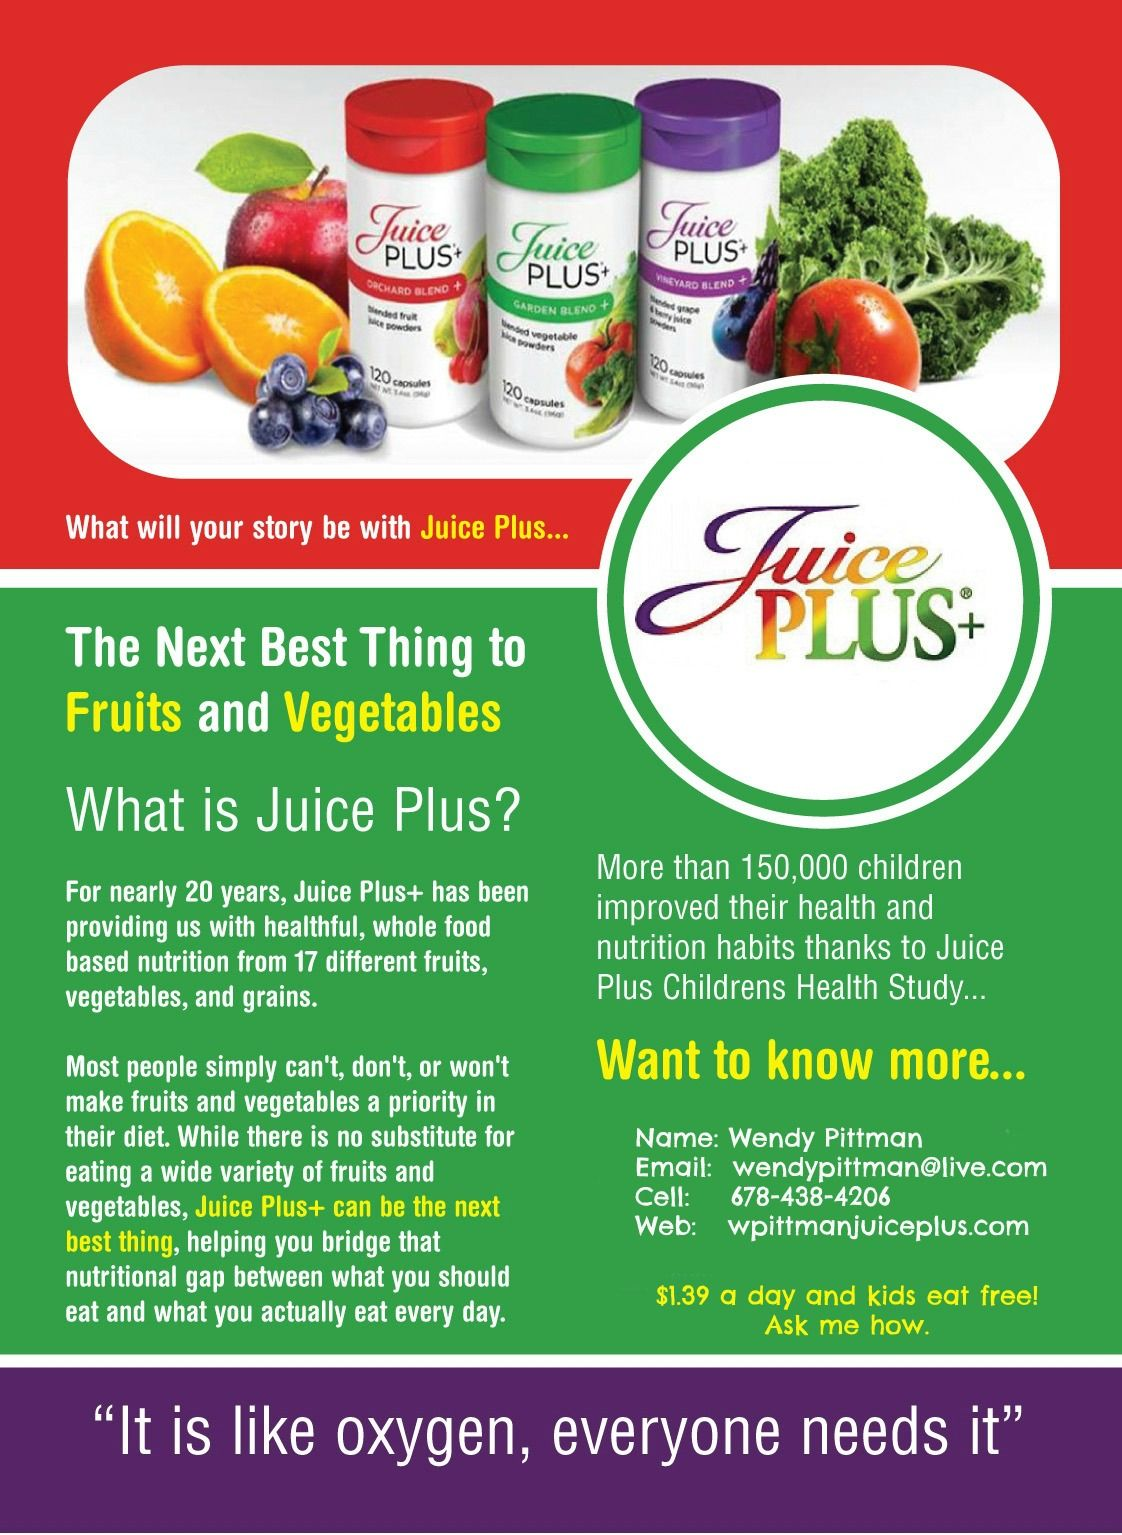 Juice Plus+ has been feeding our families for 20 years. 30